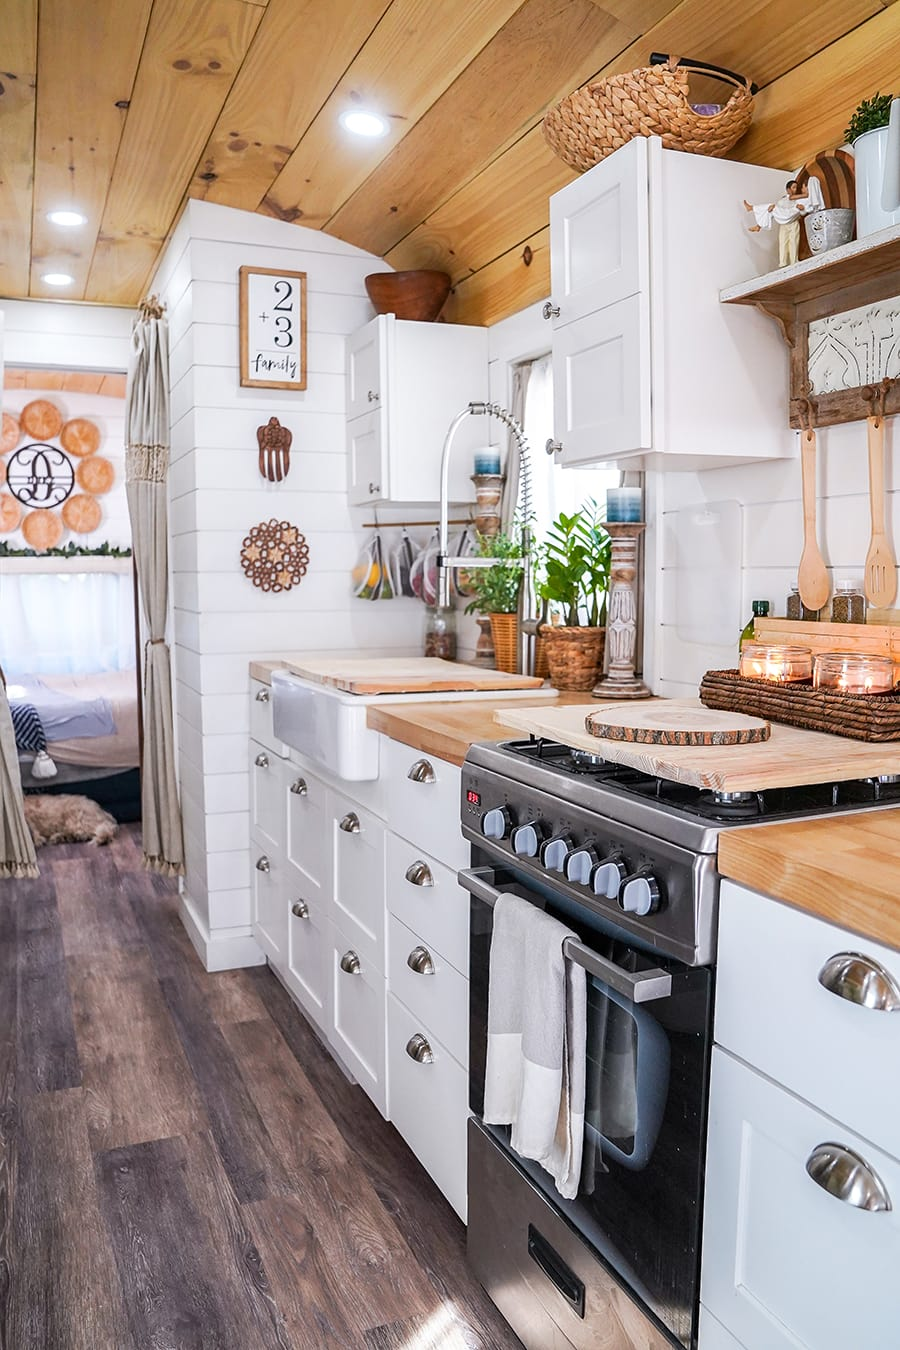 skoolie tiny kitchen @happyhomebodies